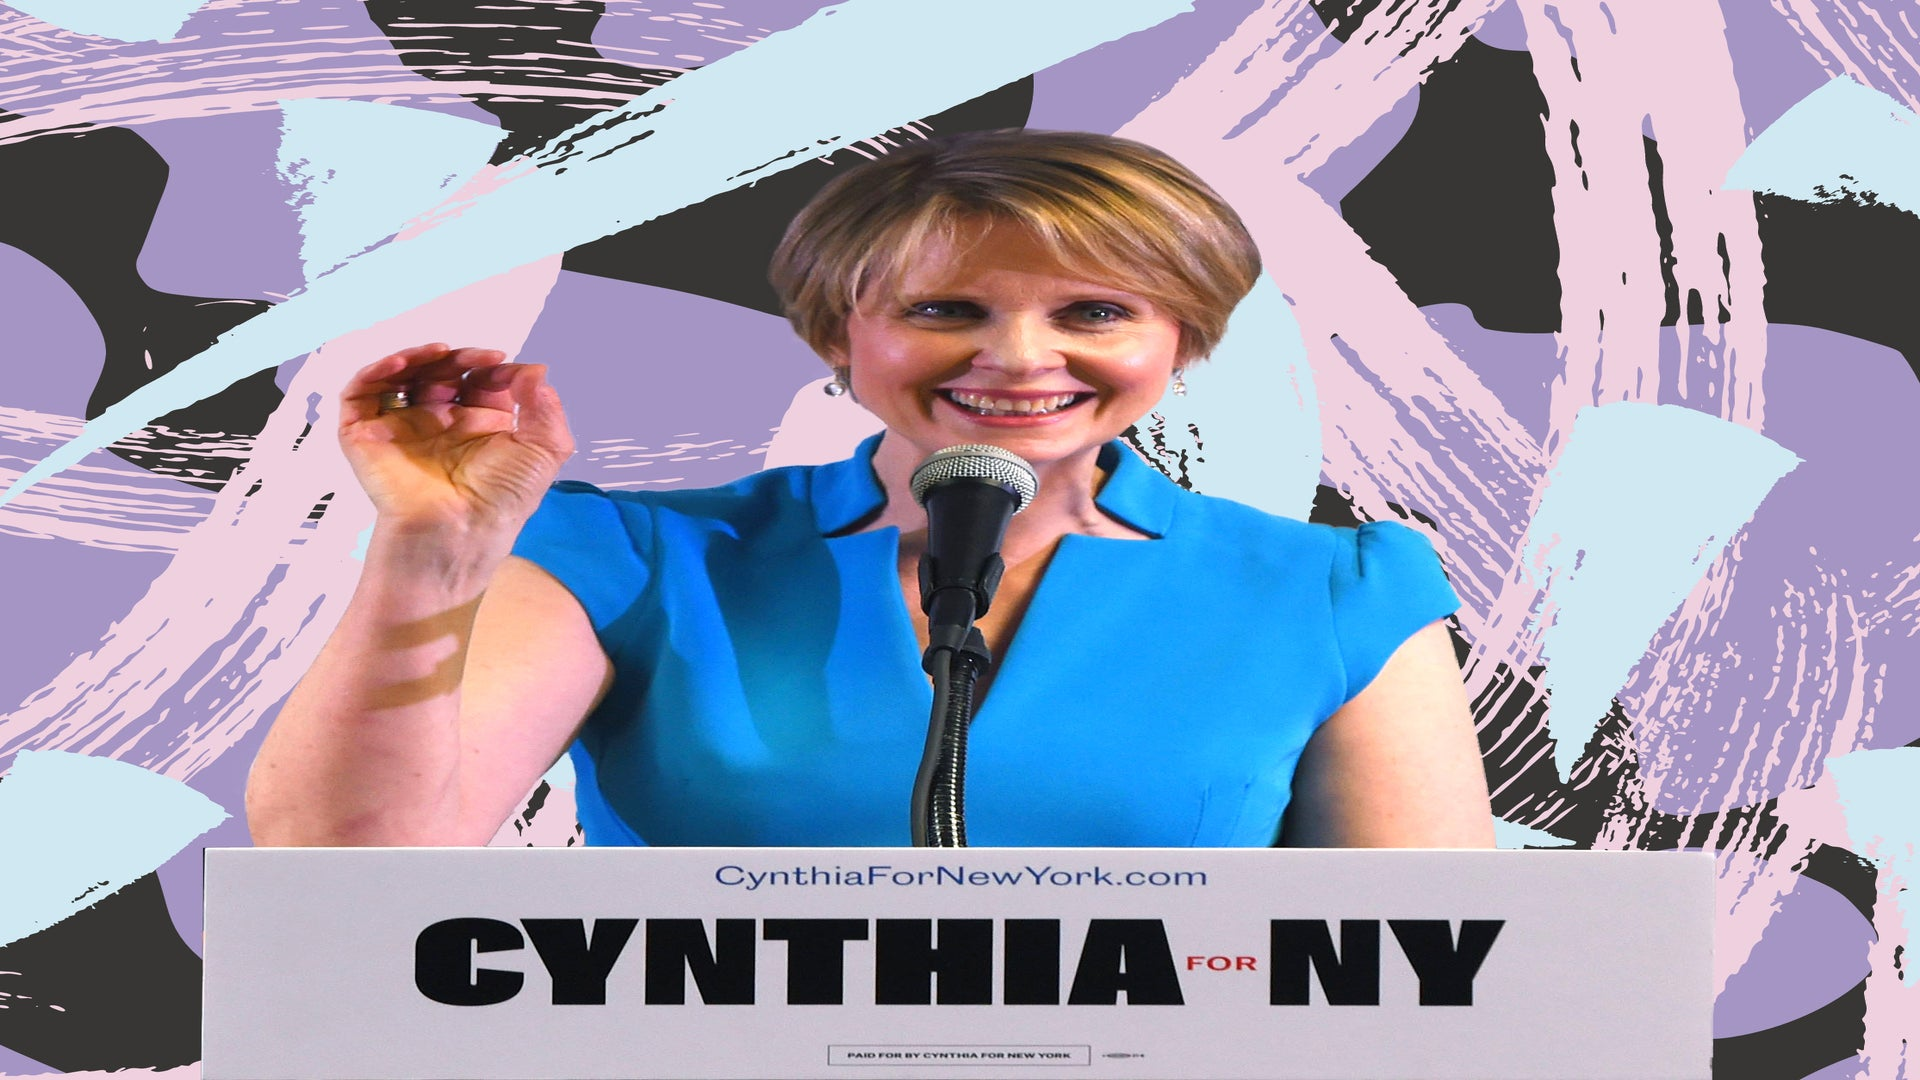 OP-ED: Here's Why We Shouldn't Cancel Cynthia Nixon